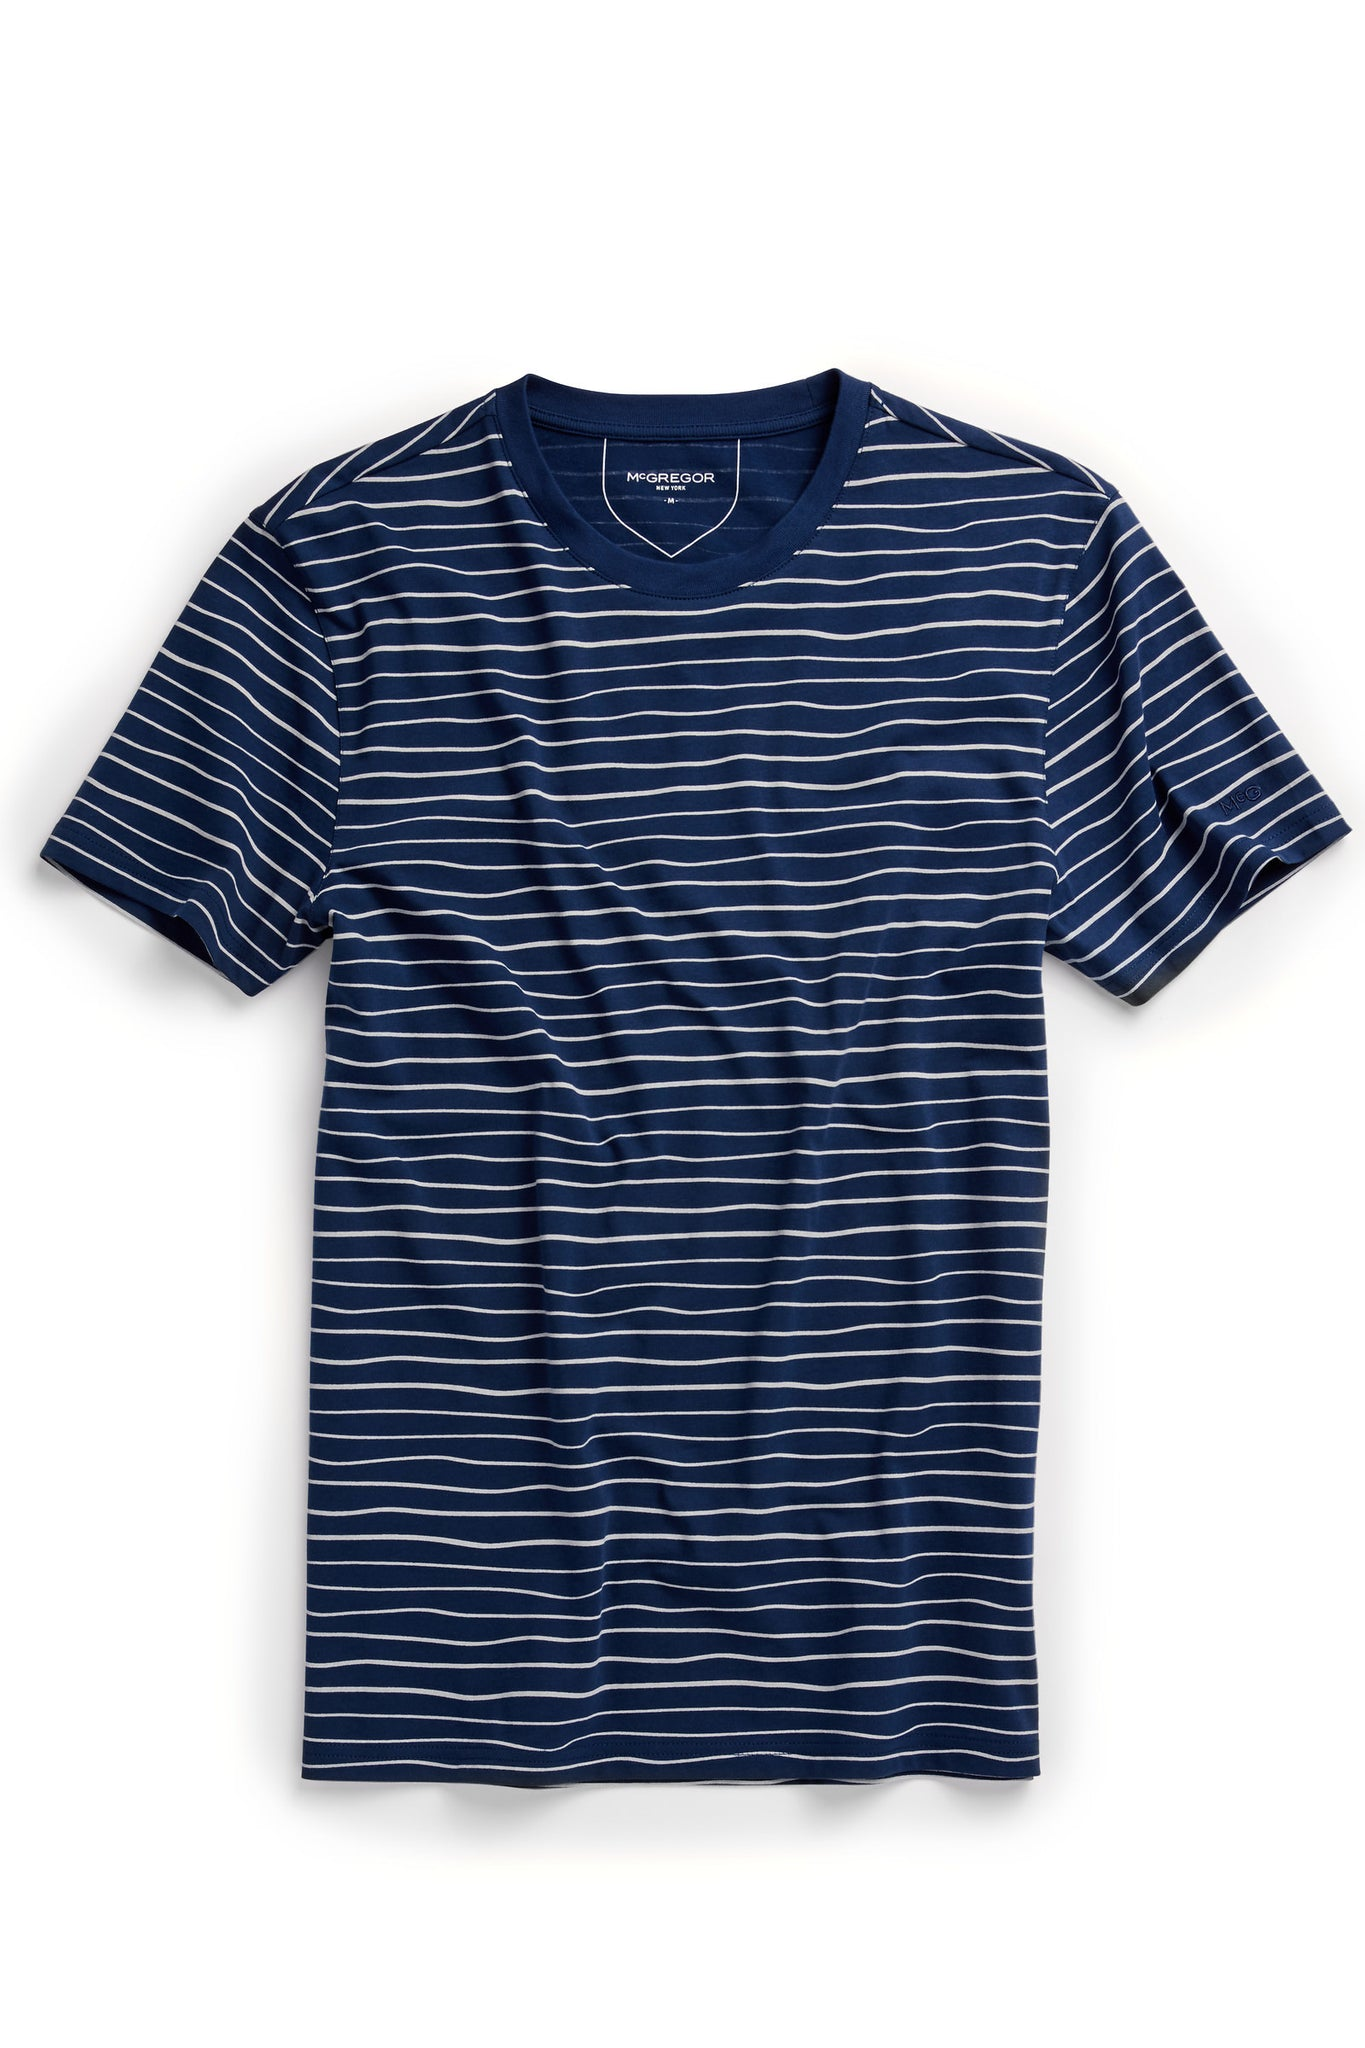 The McG Printed Stripe Tee S/s